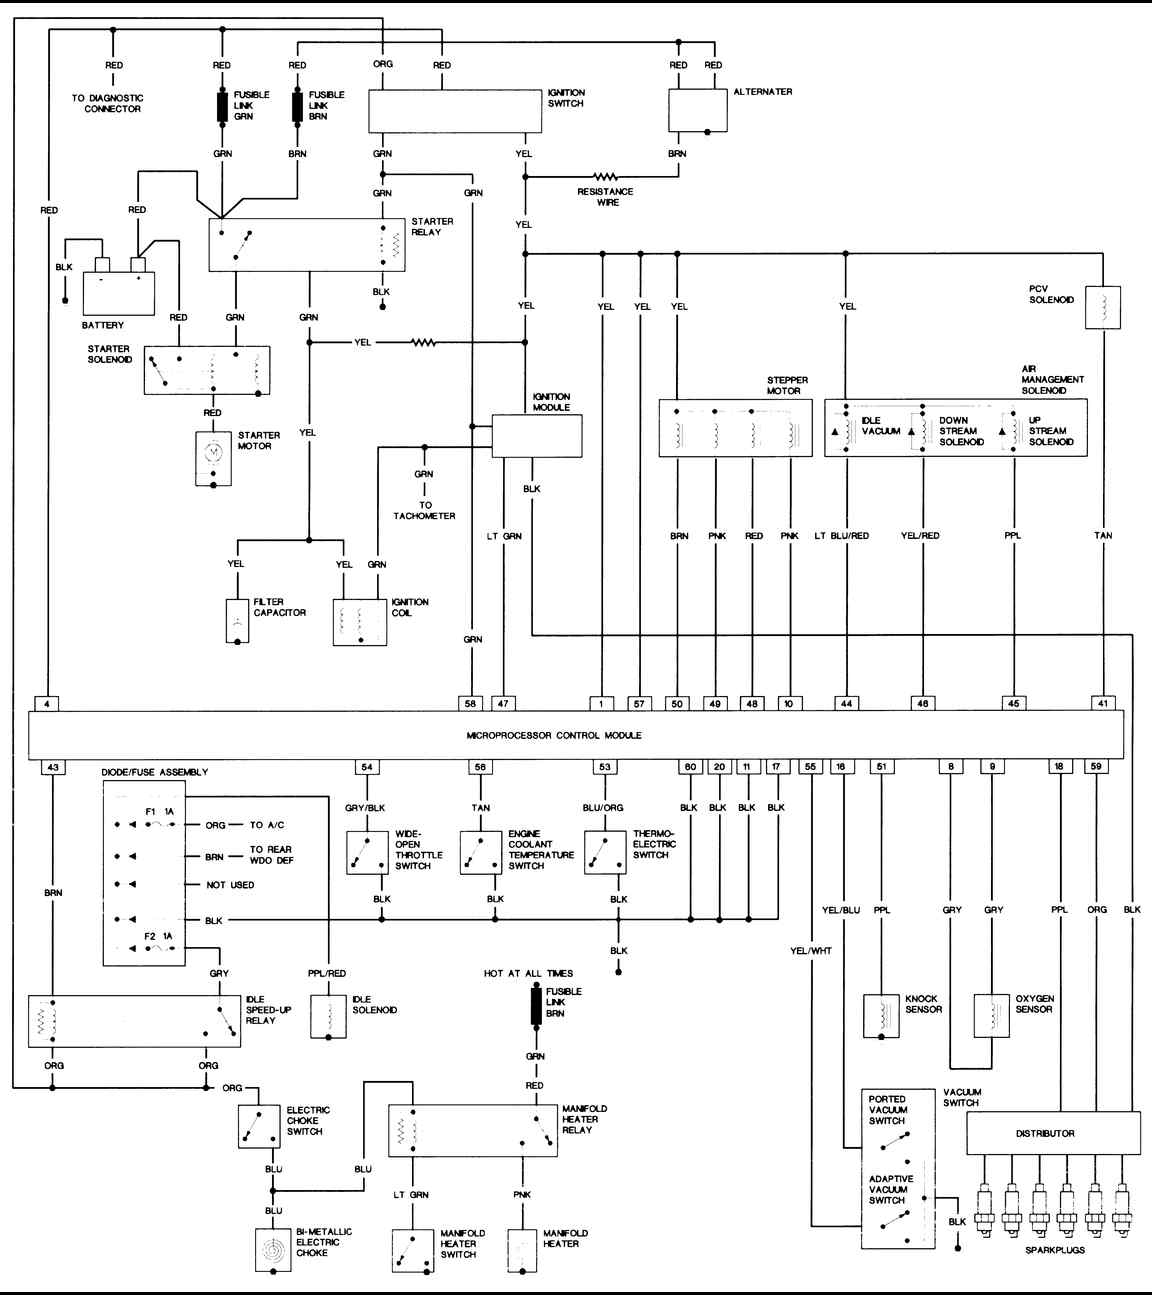 wrangler wiring diagram wiring library Lincoln Town Car Radio Wiring 1988 jeep wrangler 4 2 engine